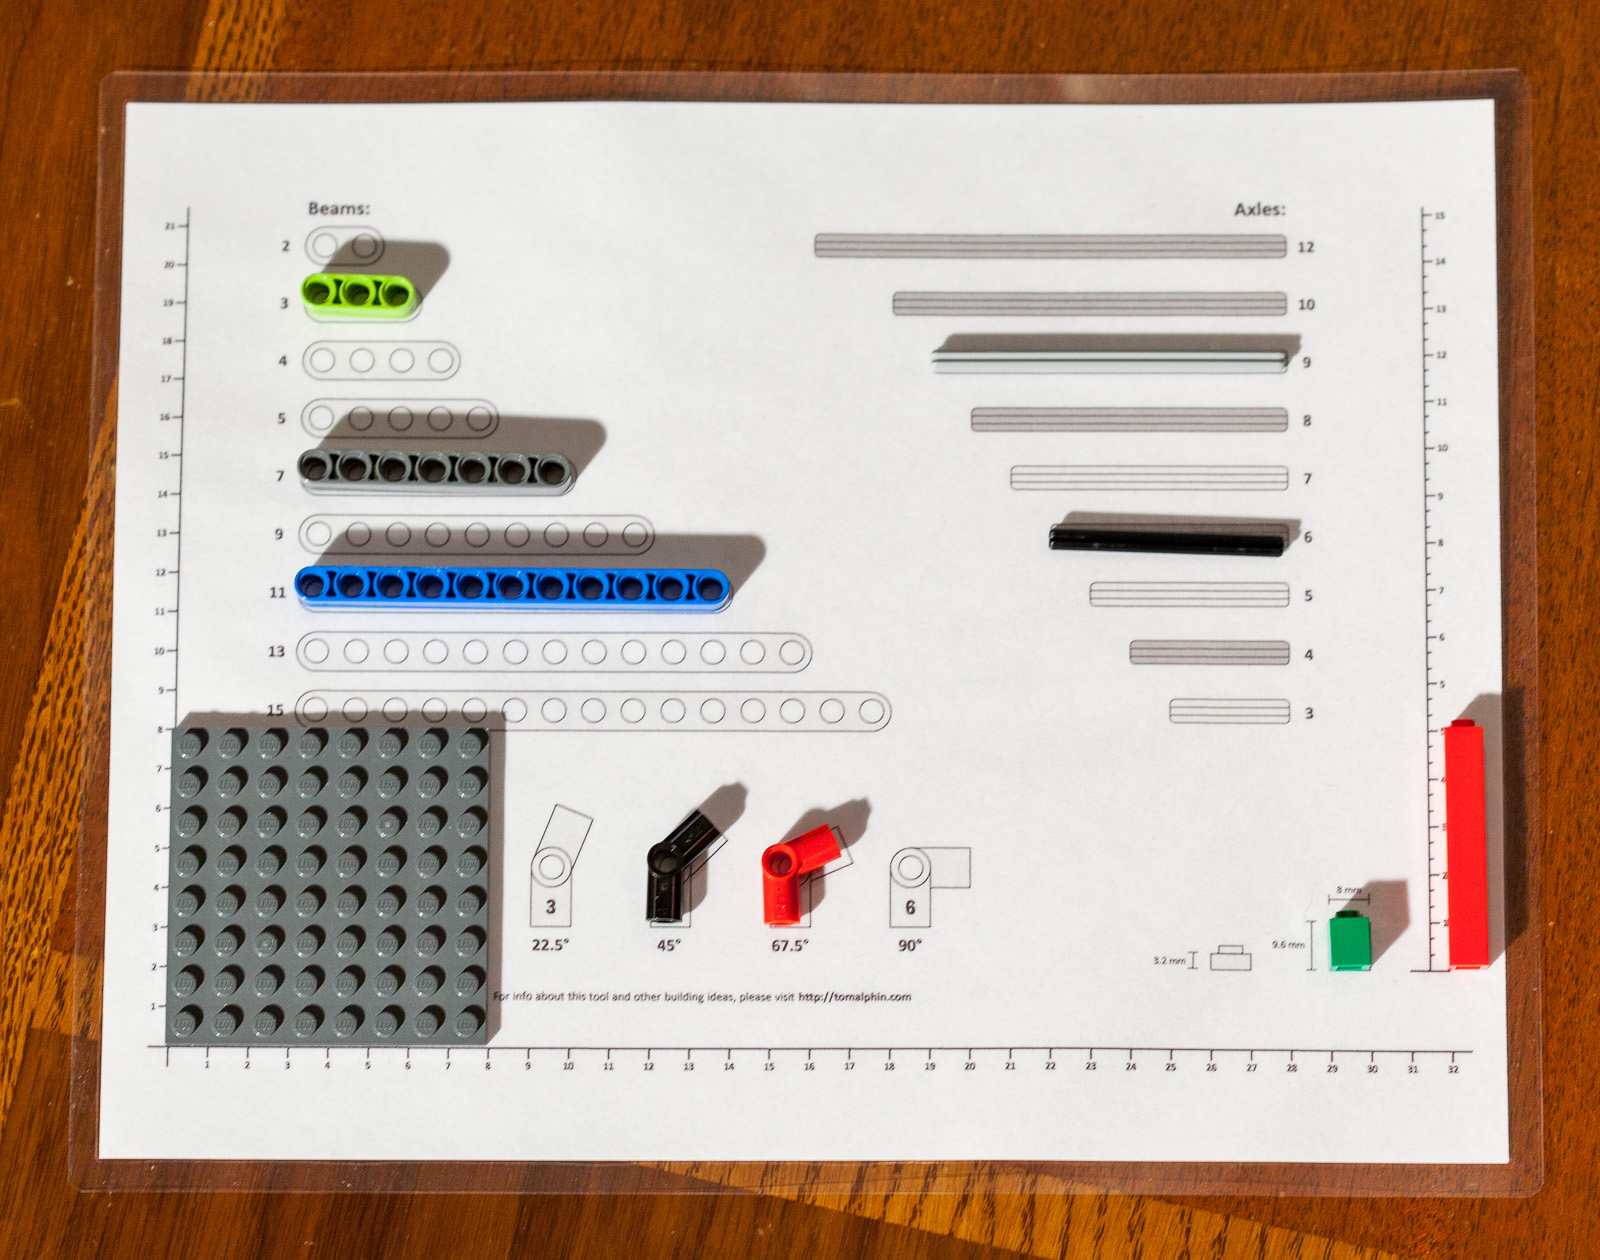 LEGO Ruler and Sorting Tool